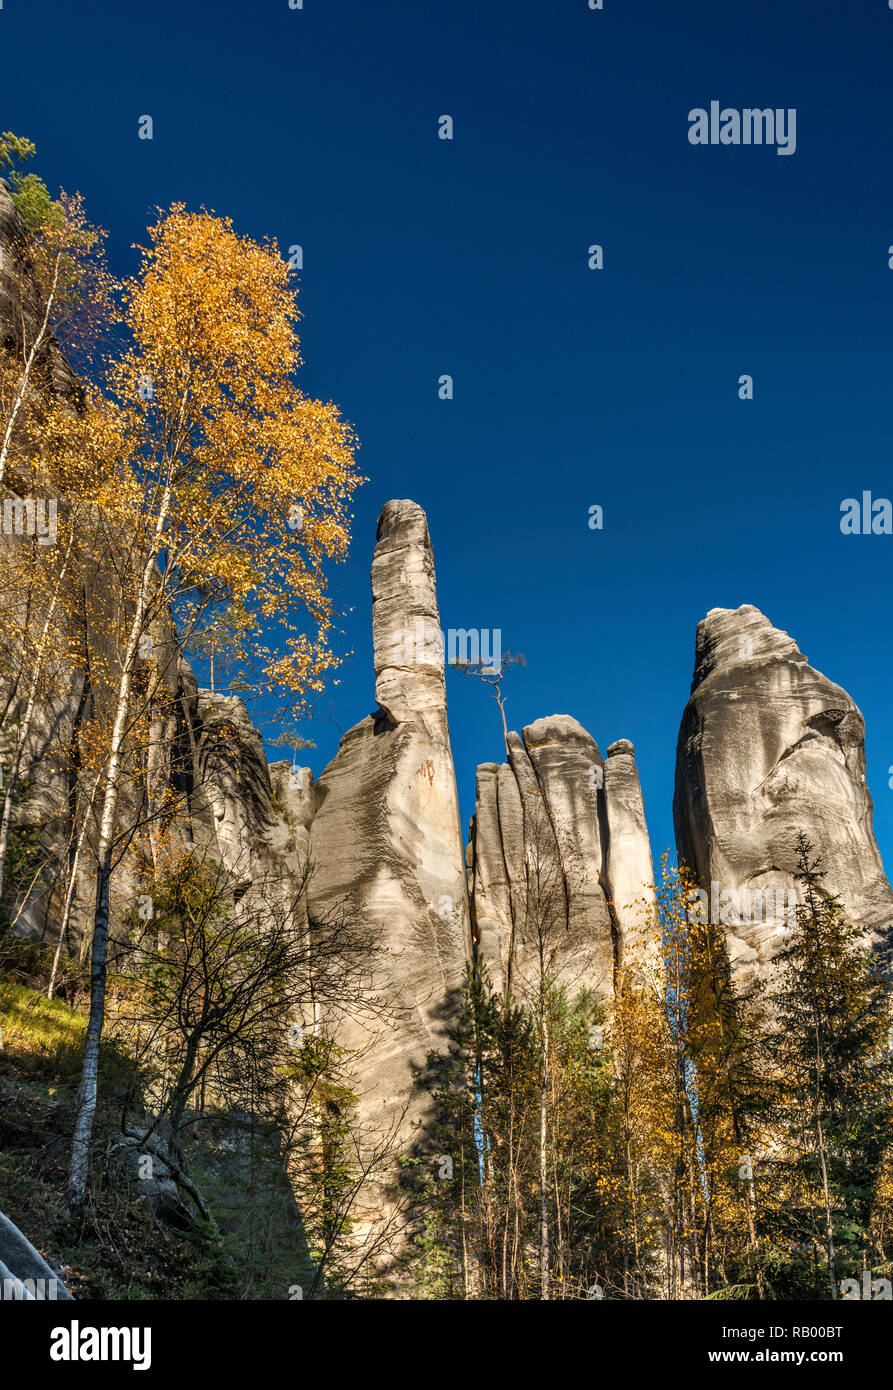 Sandstone towers at Adršpach Rocks, Adršpach-Teplice Rocks National Nature Reserve, Central Sudetes, Bohemia, Czech Republic - Stock Image